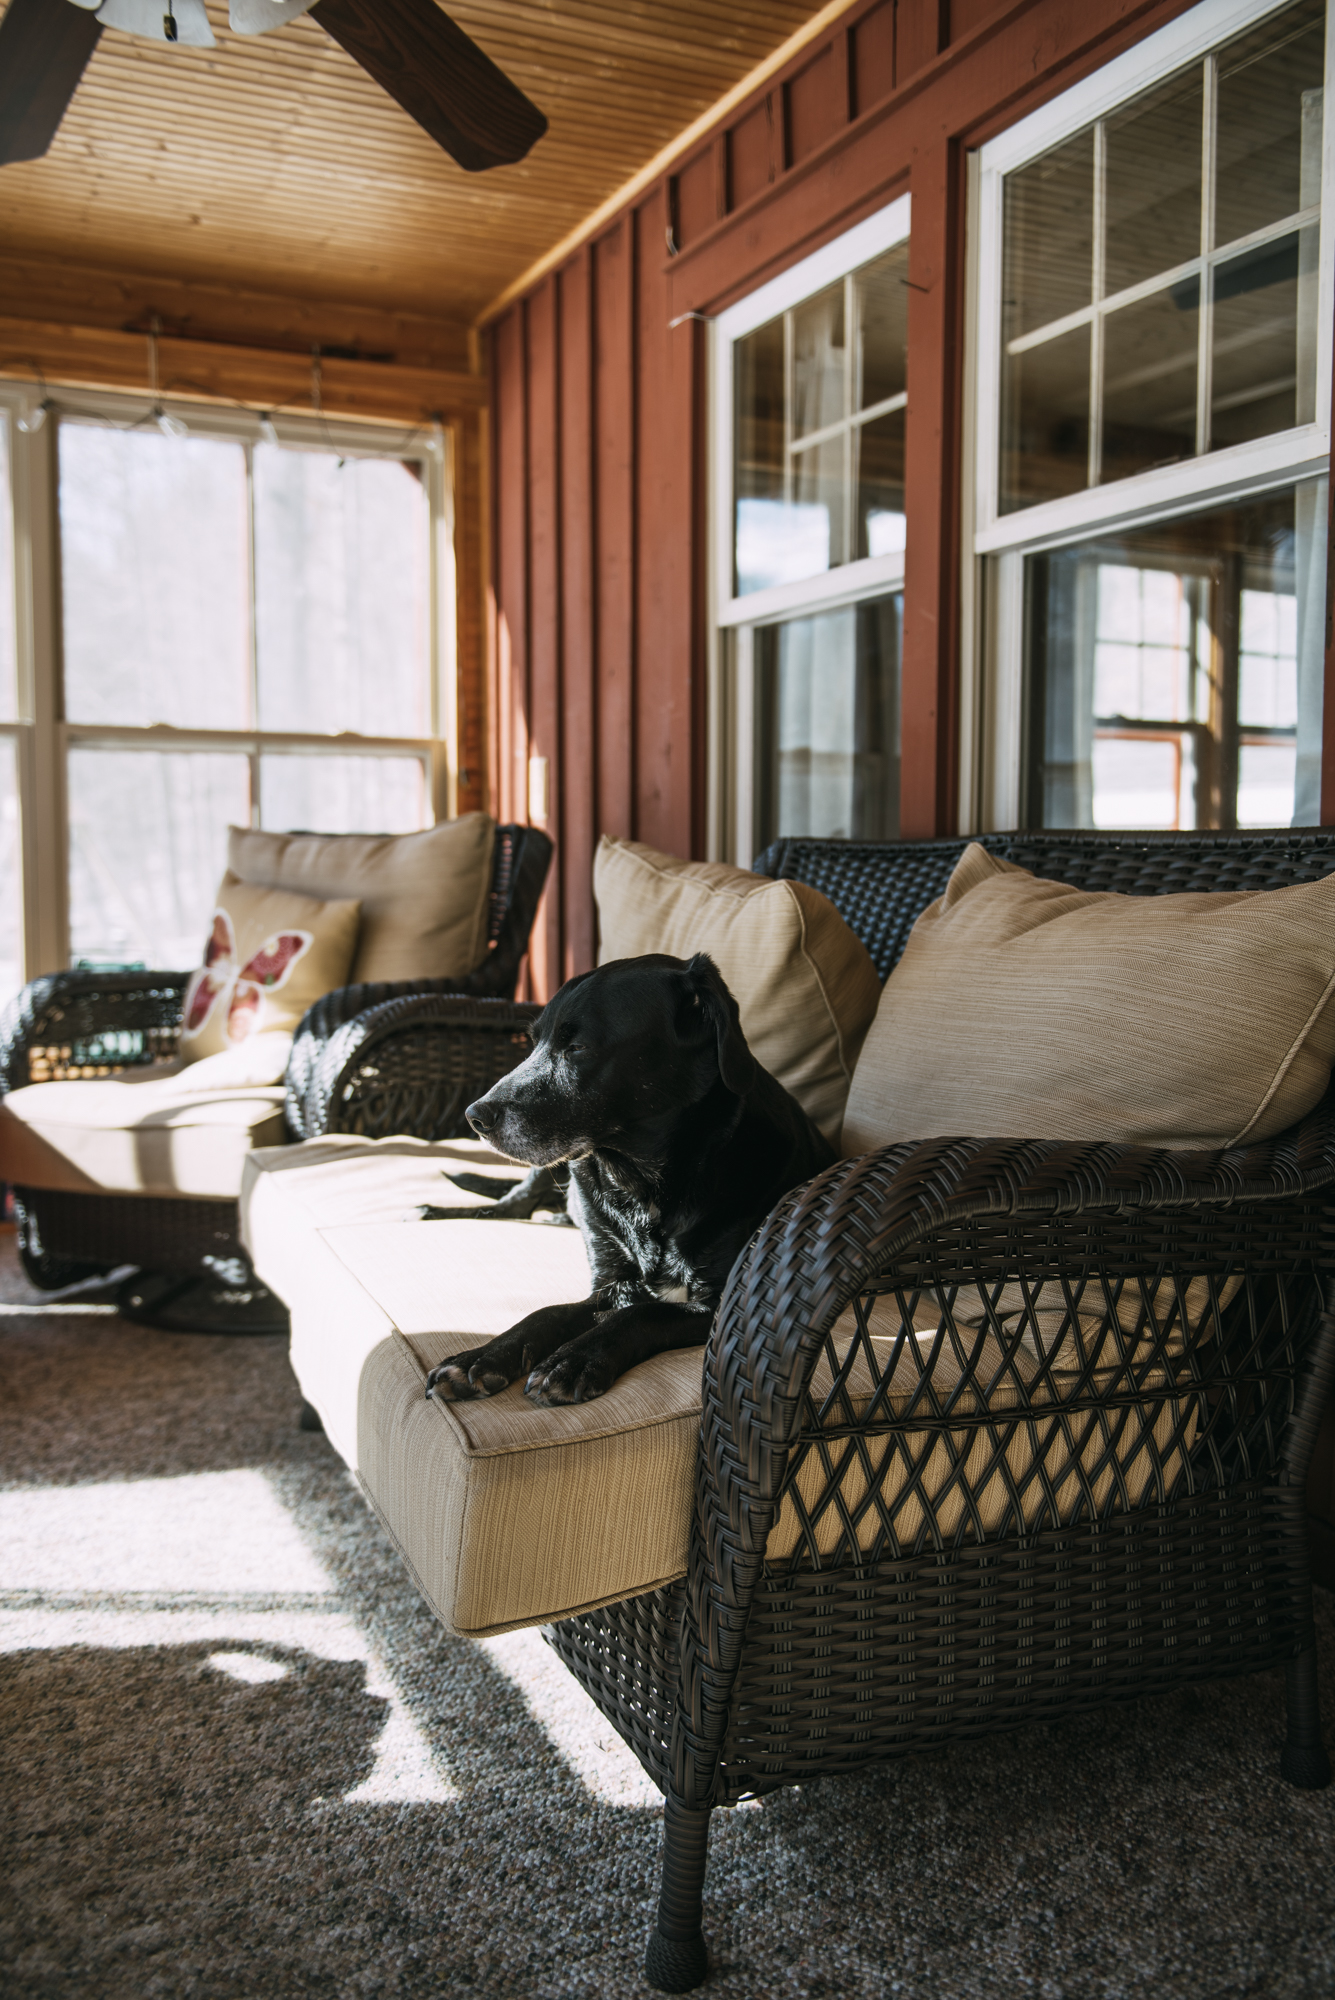 Nature loving, outdoor adventuring and just chilling out- Wellnesste Cabin Rentals offers a unique setting just for YOU.